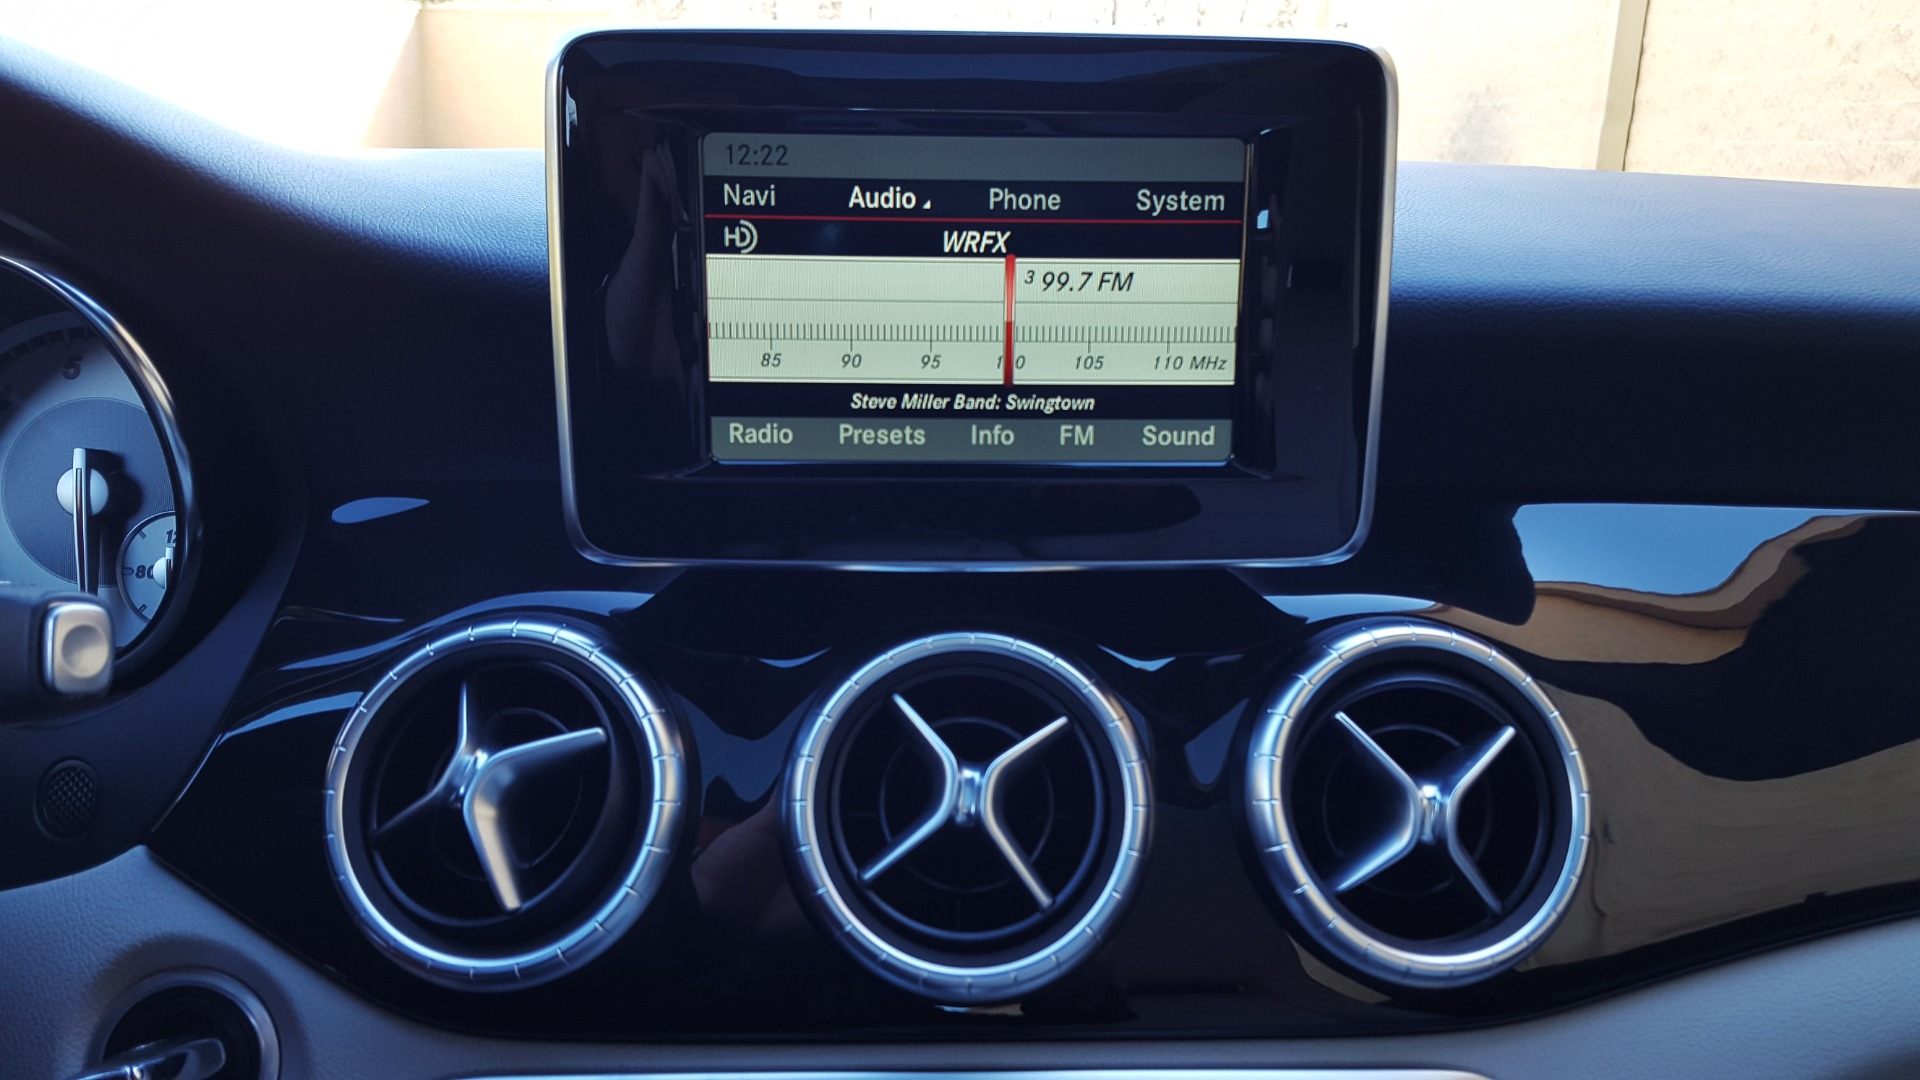 Used 2014 Mercedes-Benz CLA-CLASS CLA 250 / NAV / PANO-ROOF / BLIND SPOT ASSIST / XENON HEADLIGHTS for sale $19,995 at Formula Imports in Charlotte NC 28227 34